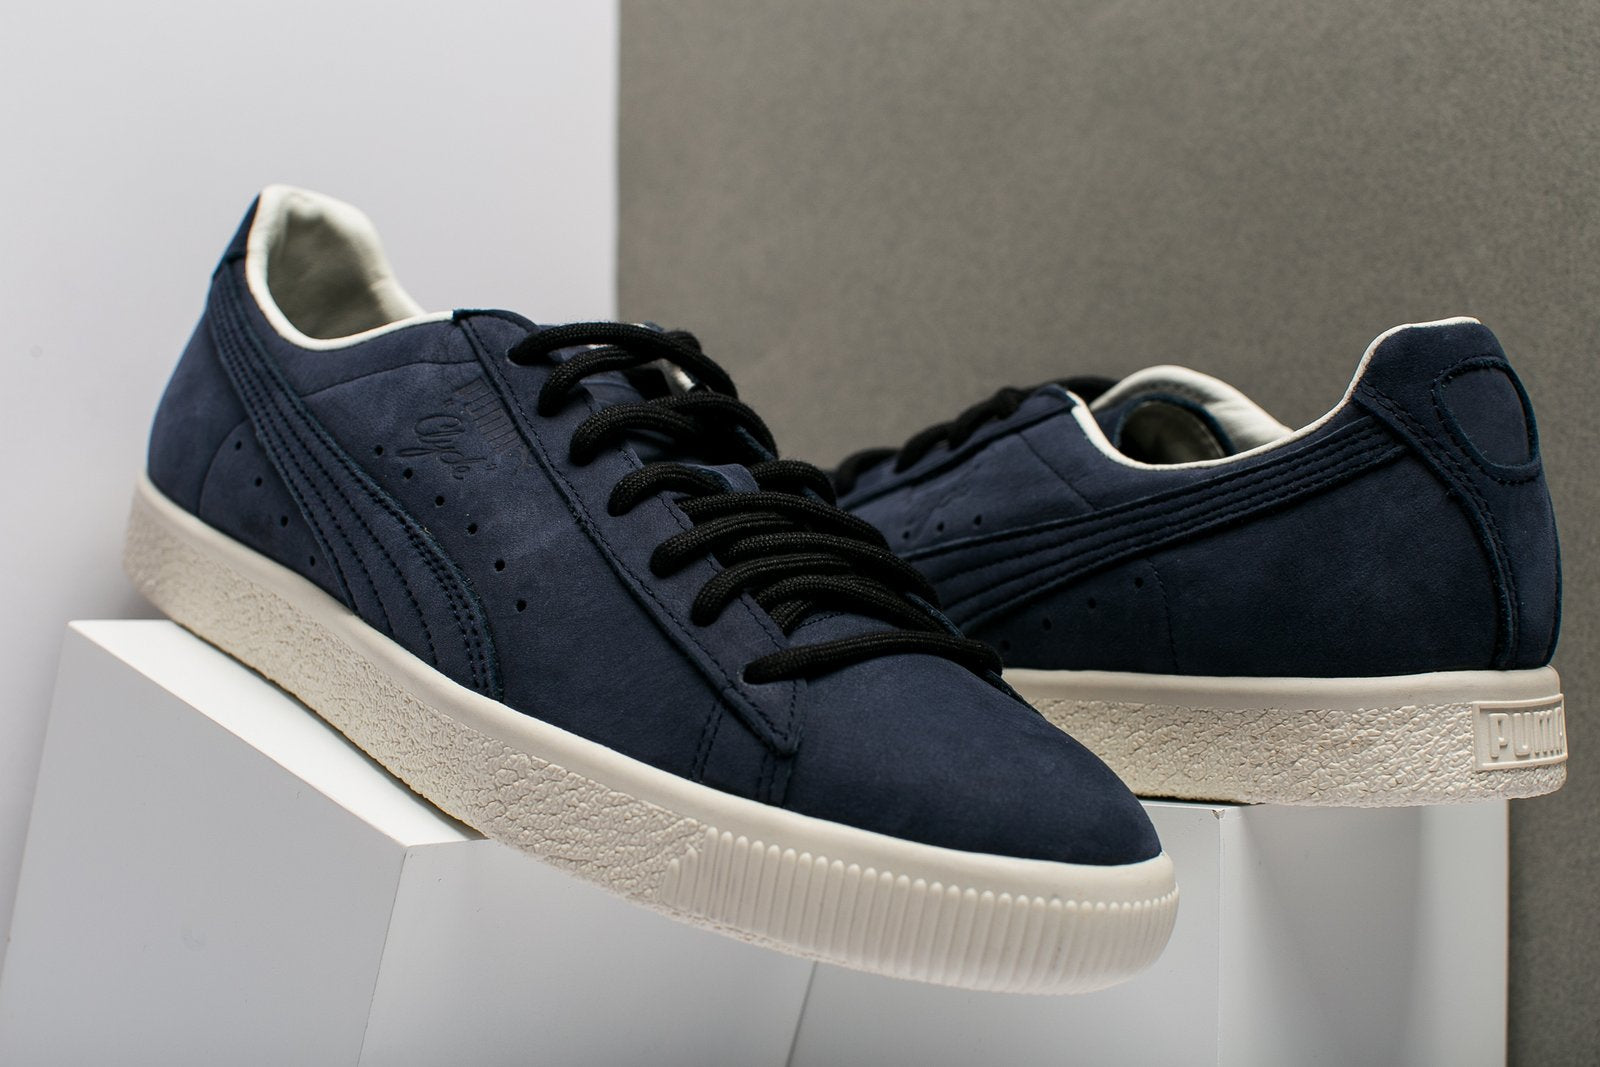 1e3d639bee8 PUMA CLYDE FROSTED - Oneness Boutique